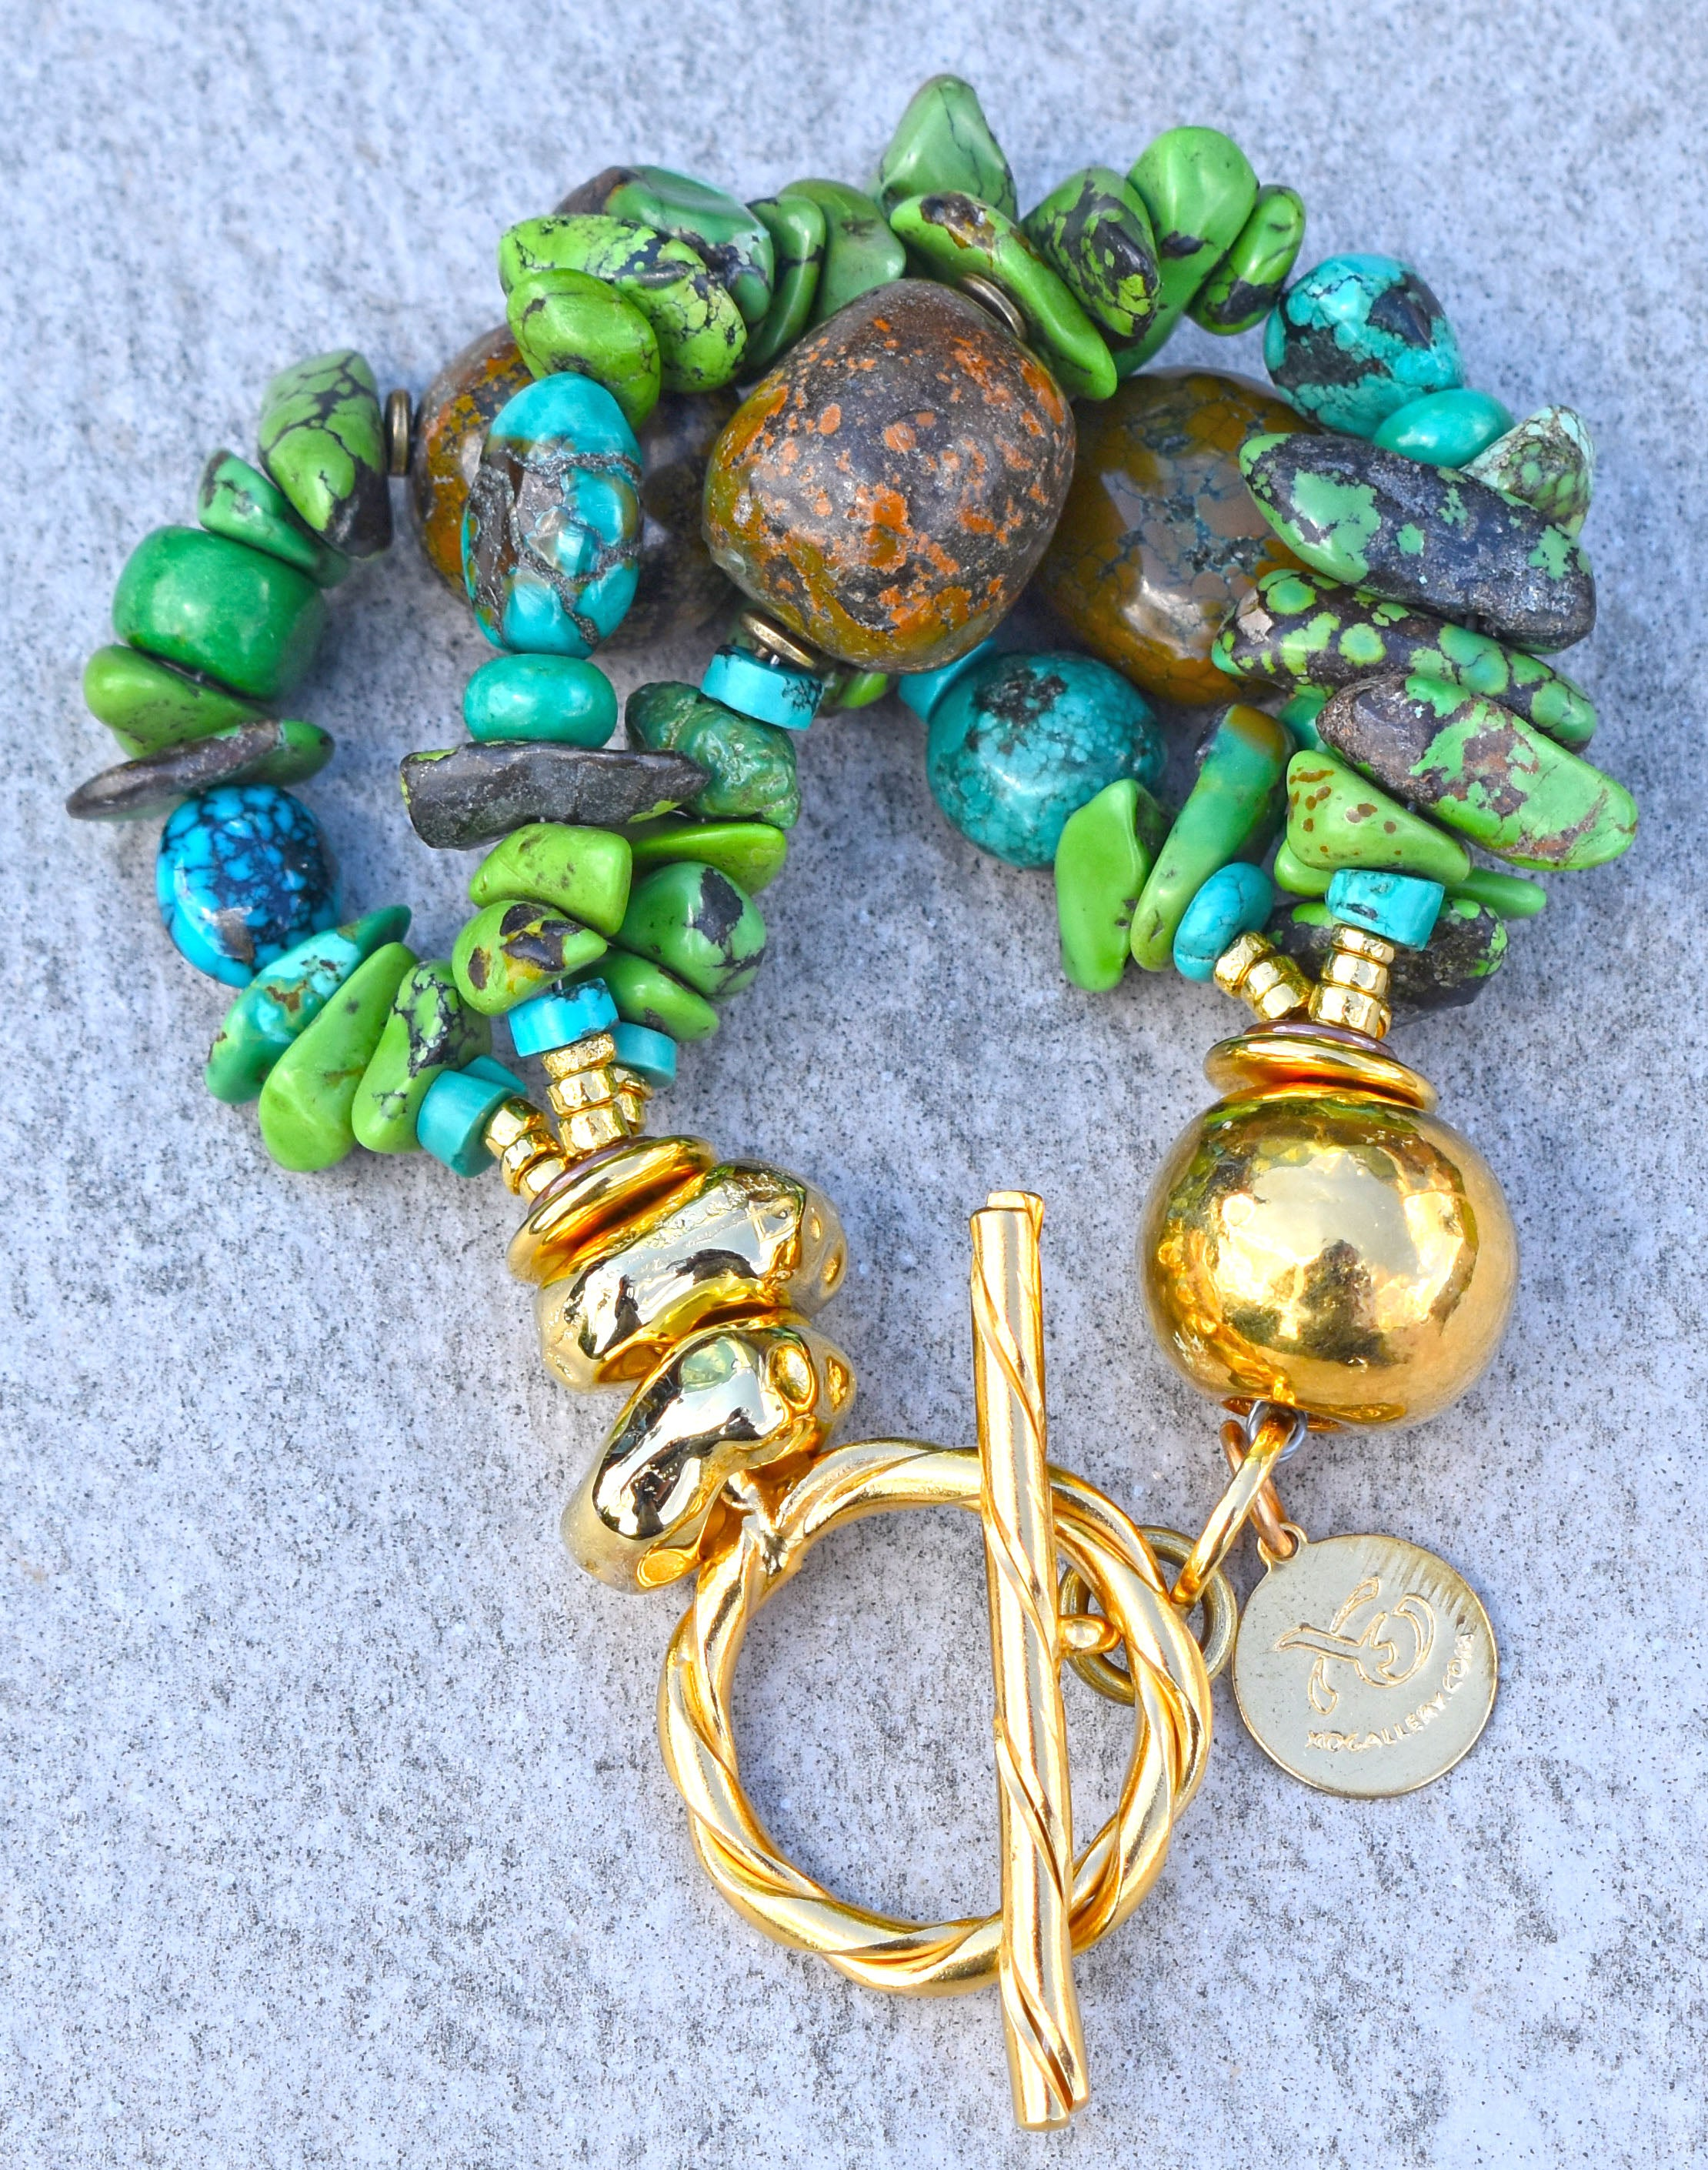 Gorgeous Lush Mixed Green & Blue Turquoise and Gold Statement Bracelet